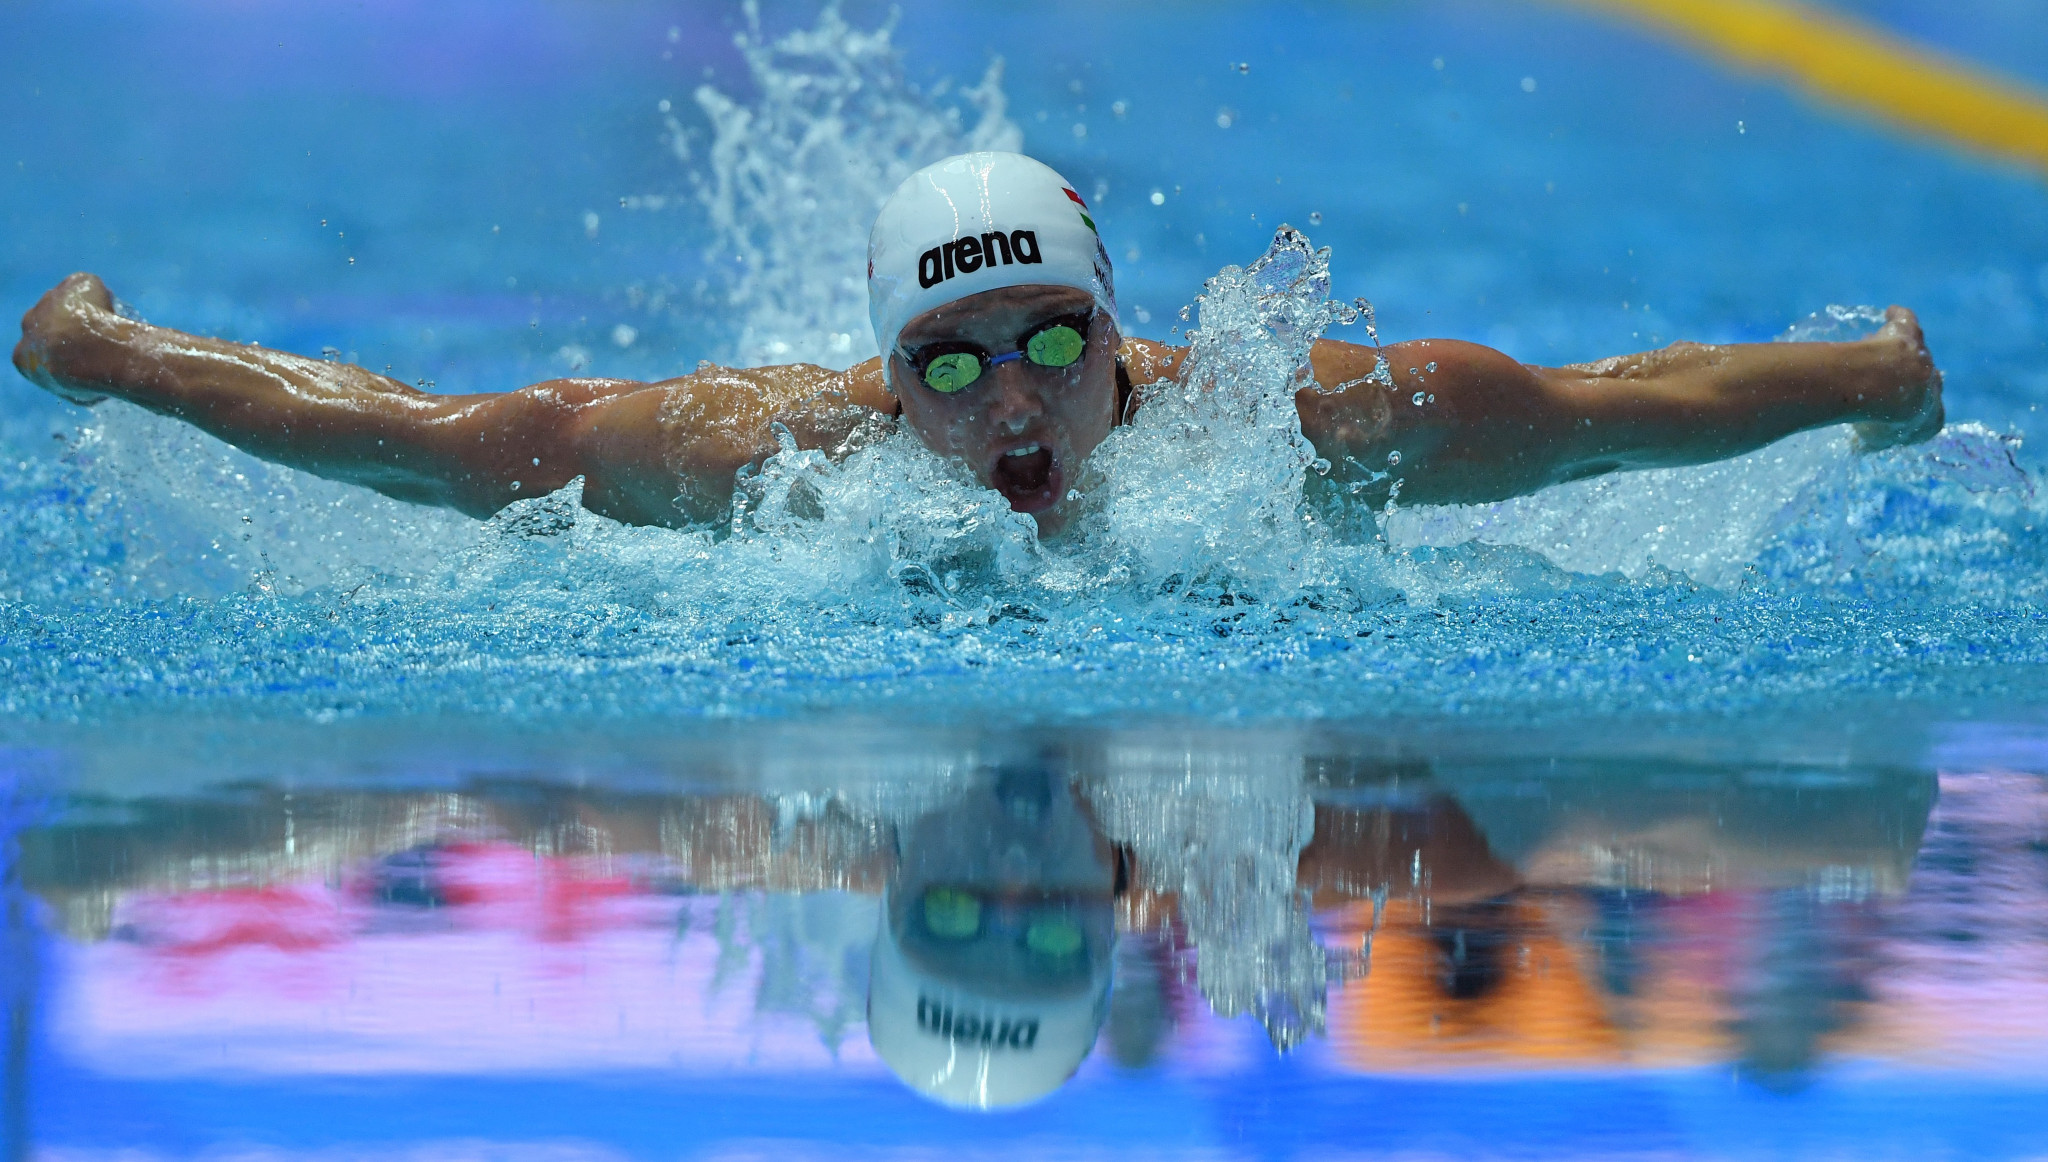 Hungary's Katinka Hosszú will be competing in Japan's capital on the back of winning two gold medals at the World Aquatics Championships in Gwangju ©Getty Images